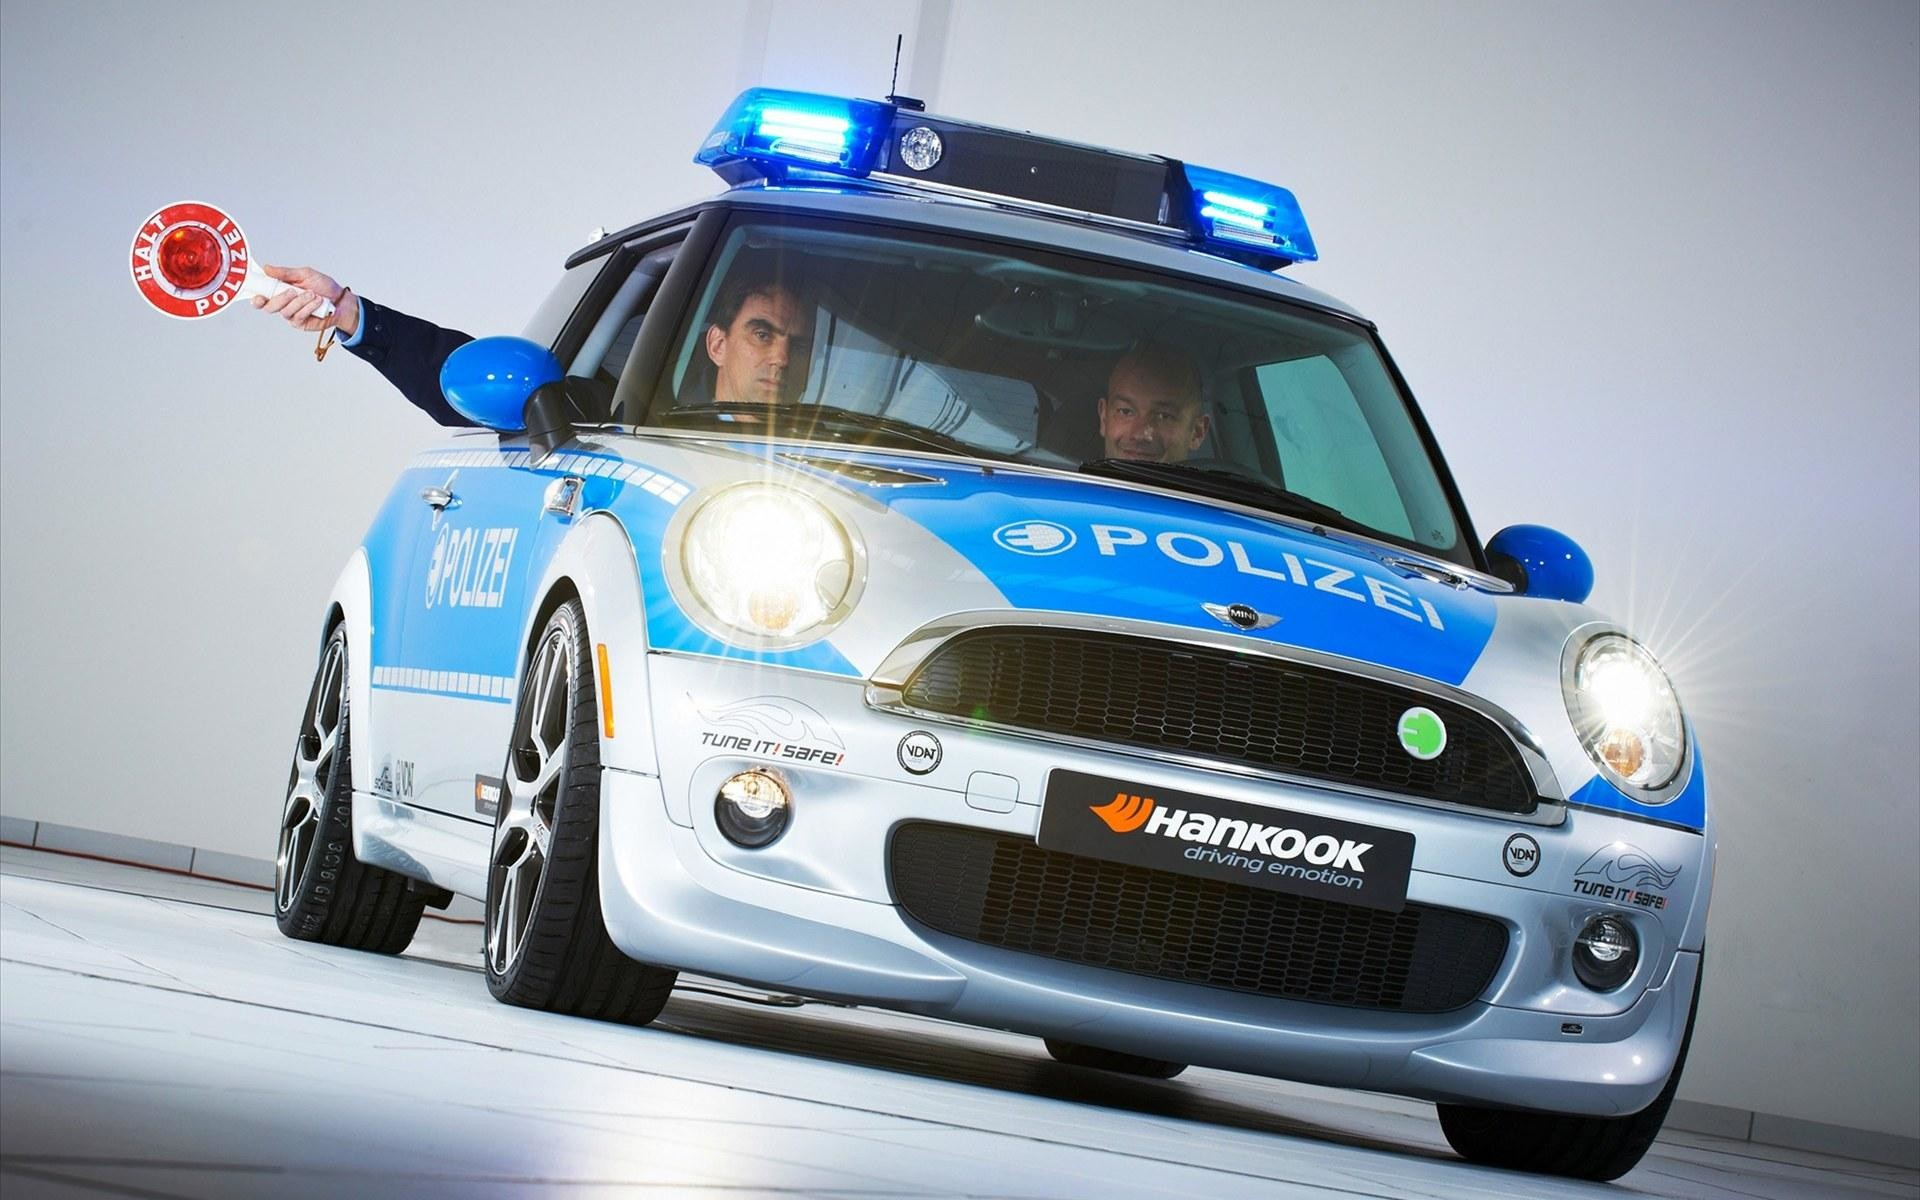 1920x1200 Police Car wallpapers hd